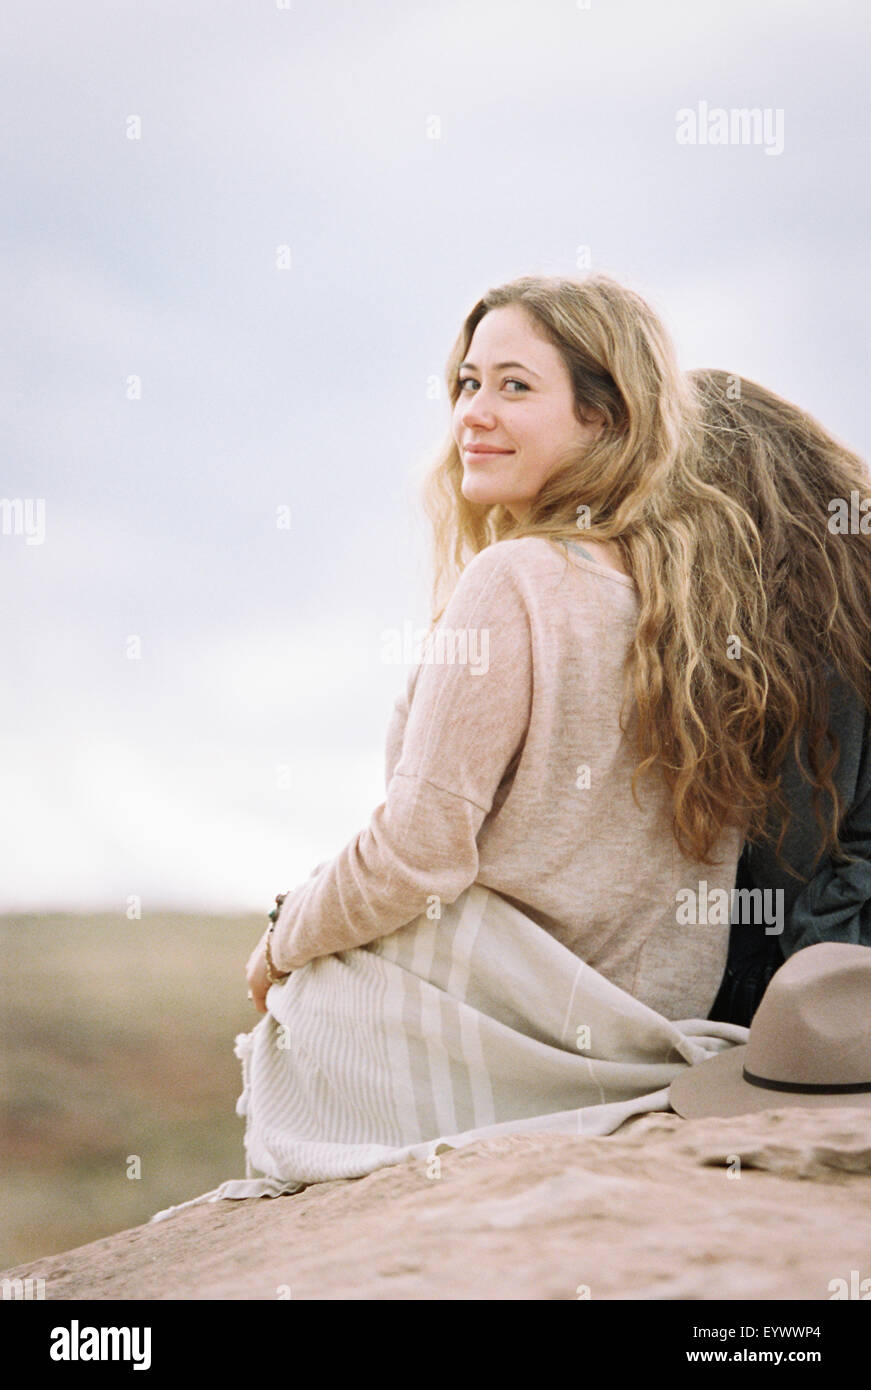 Two women one looking over her shoulder, smiling - Stock Image